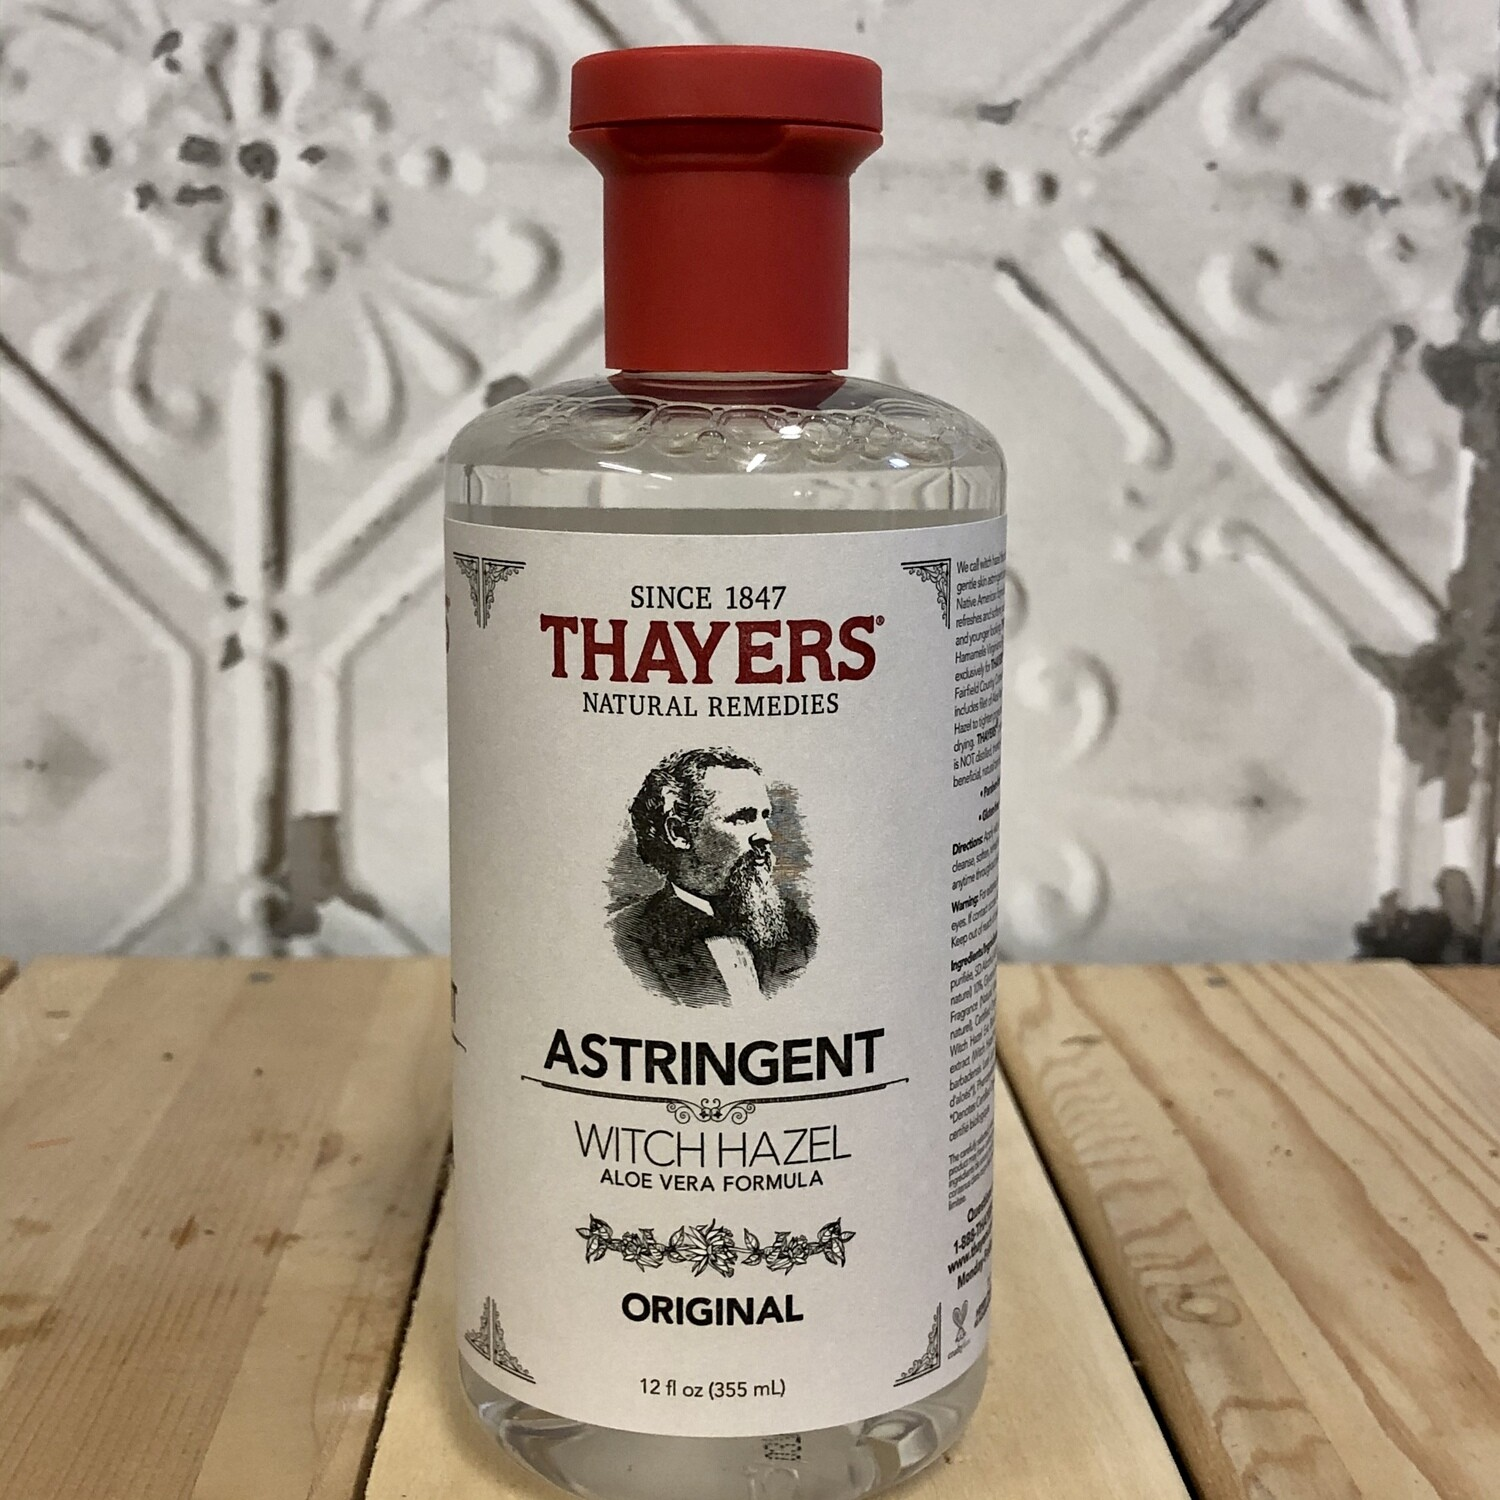 THAYERS Astringent Witch Hazel 355ml